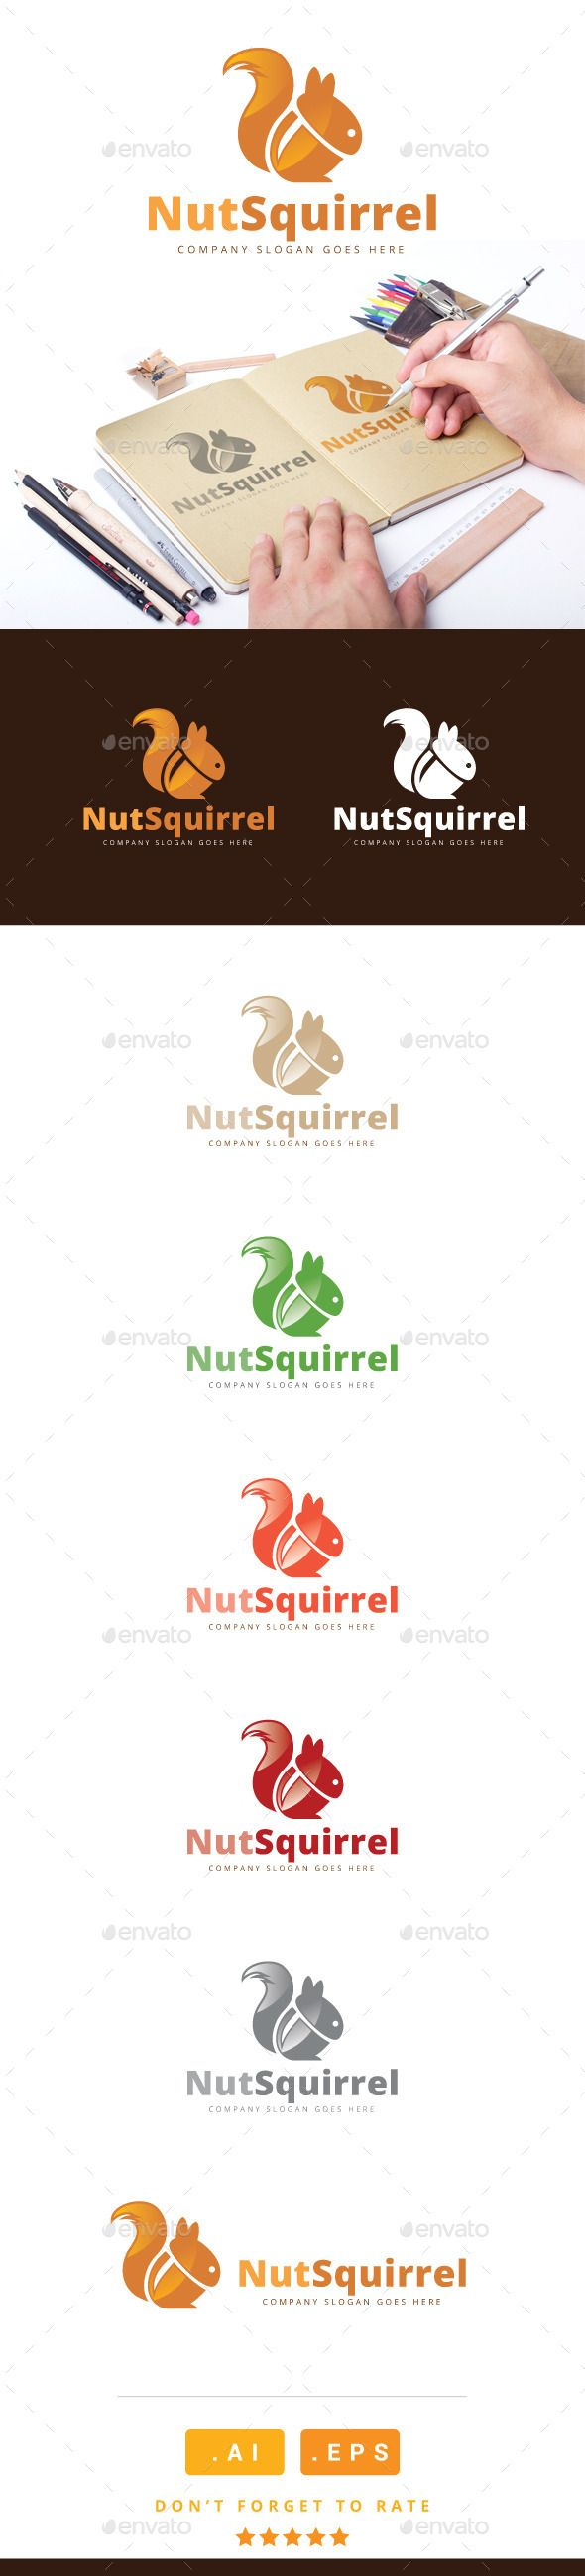 Nut Squirrel Logo